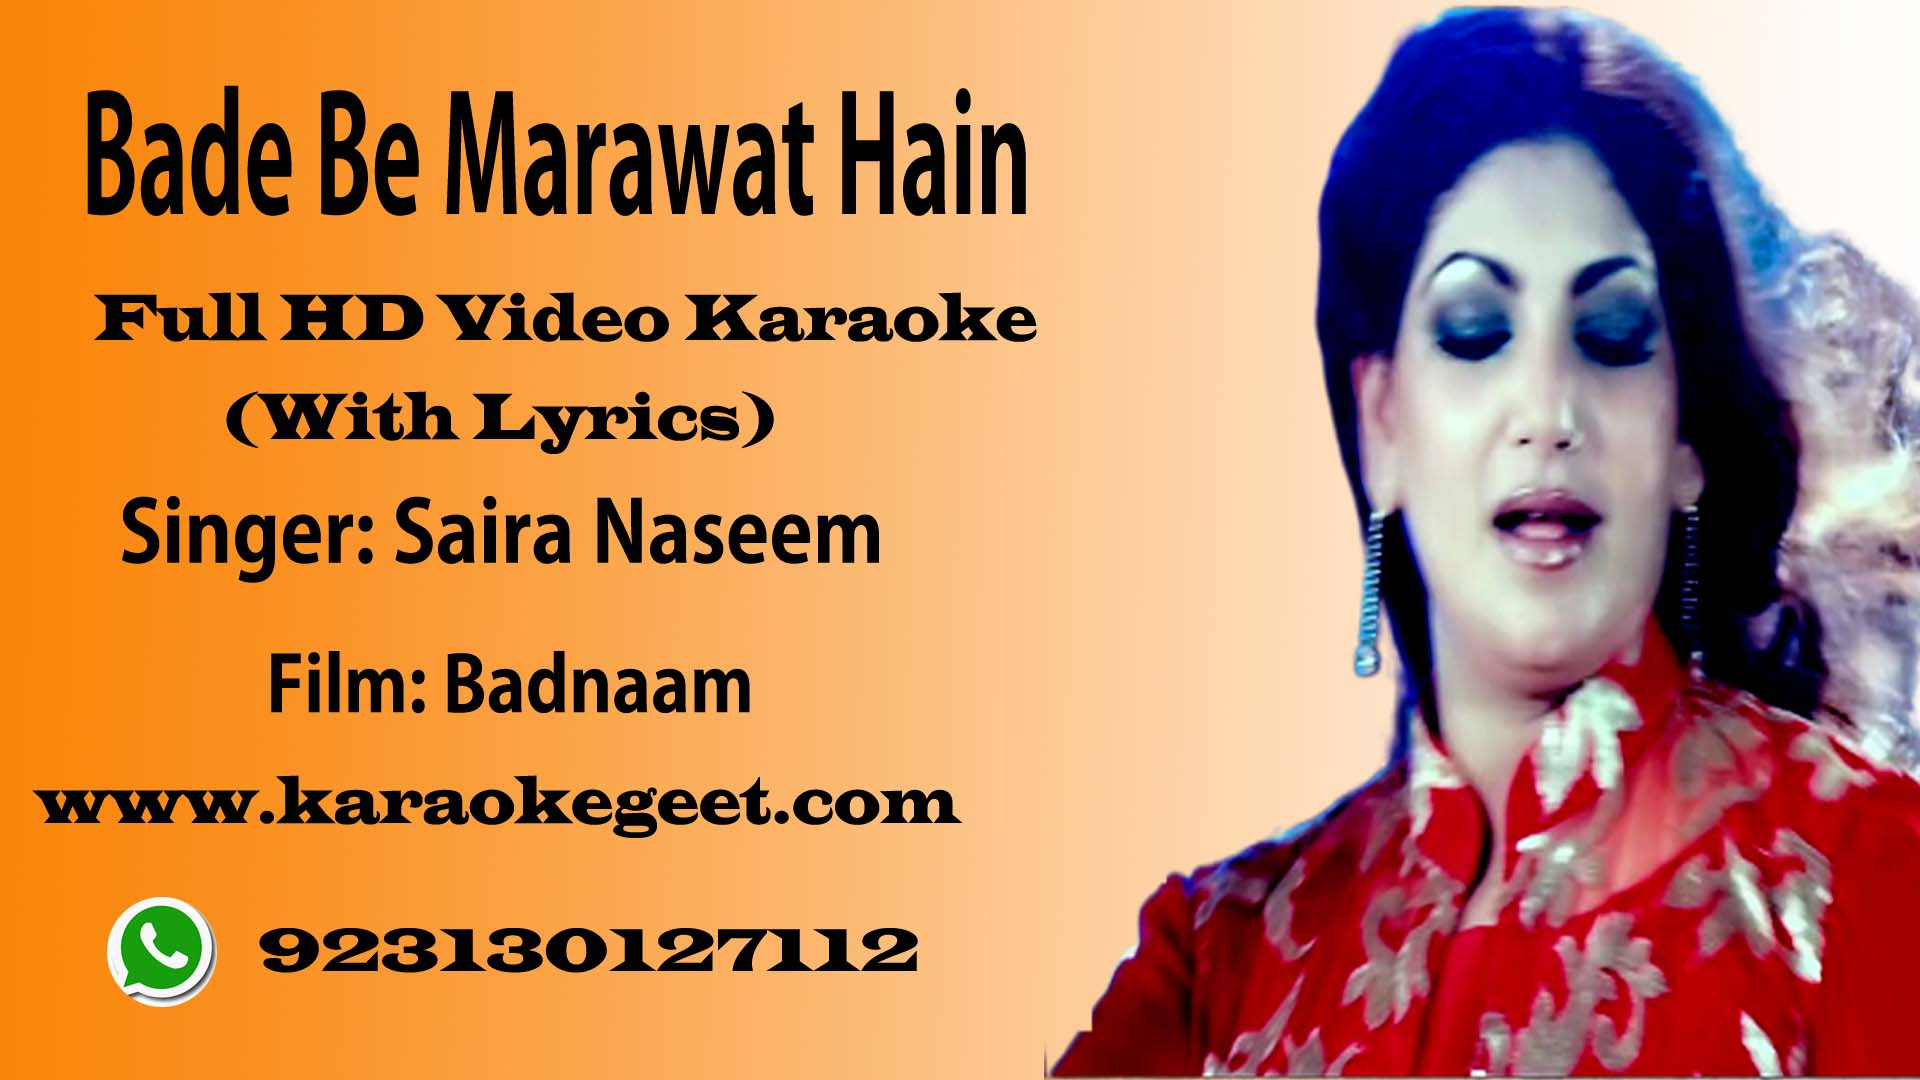 Bade be marawat hain ye husn wale Video Karaoke